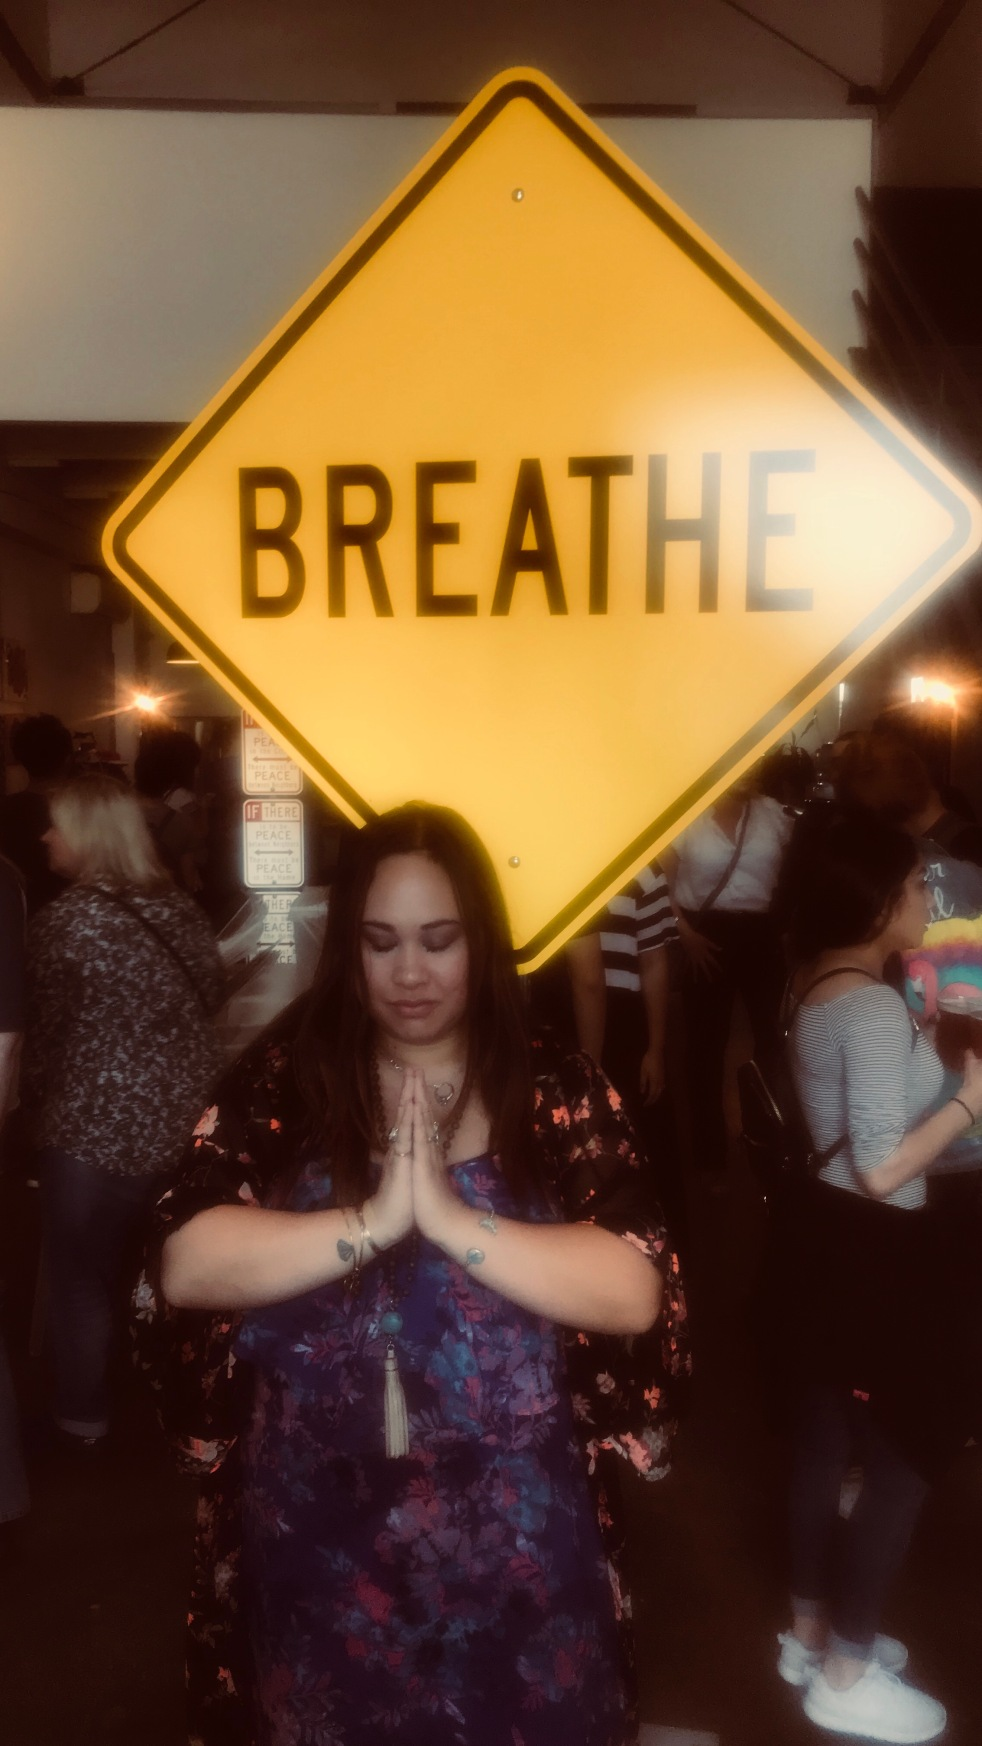 ]Breathe Photo.JPG